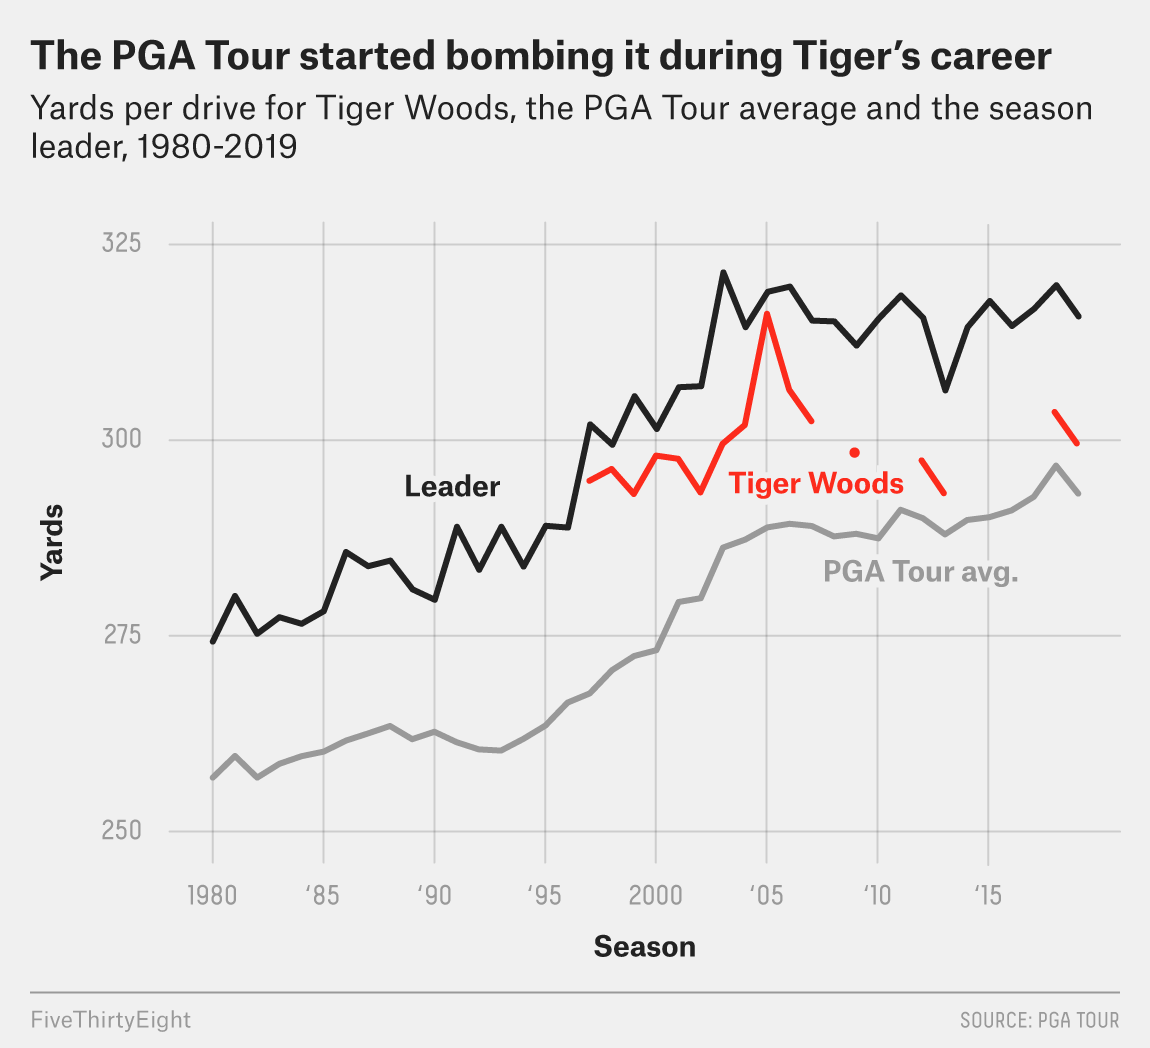 tiger woods used to be one of golf u0026 39 s longest hitters  u2014 until the sport caught up